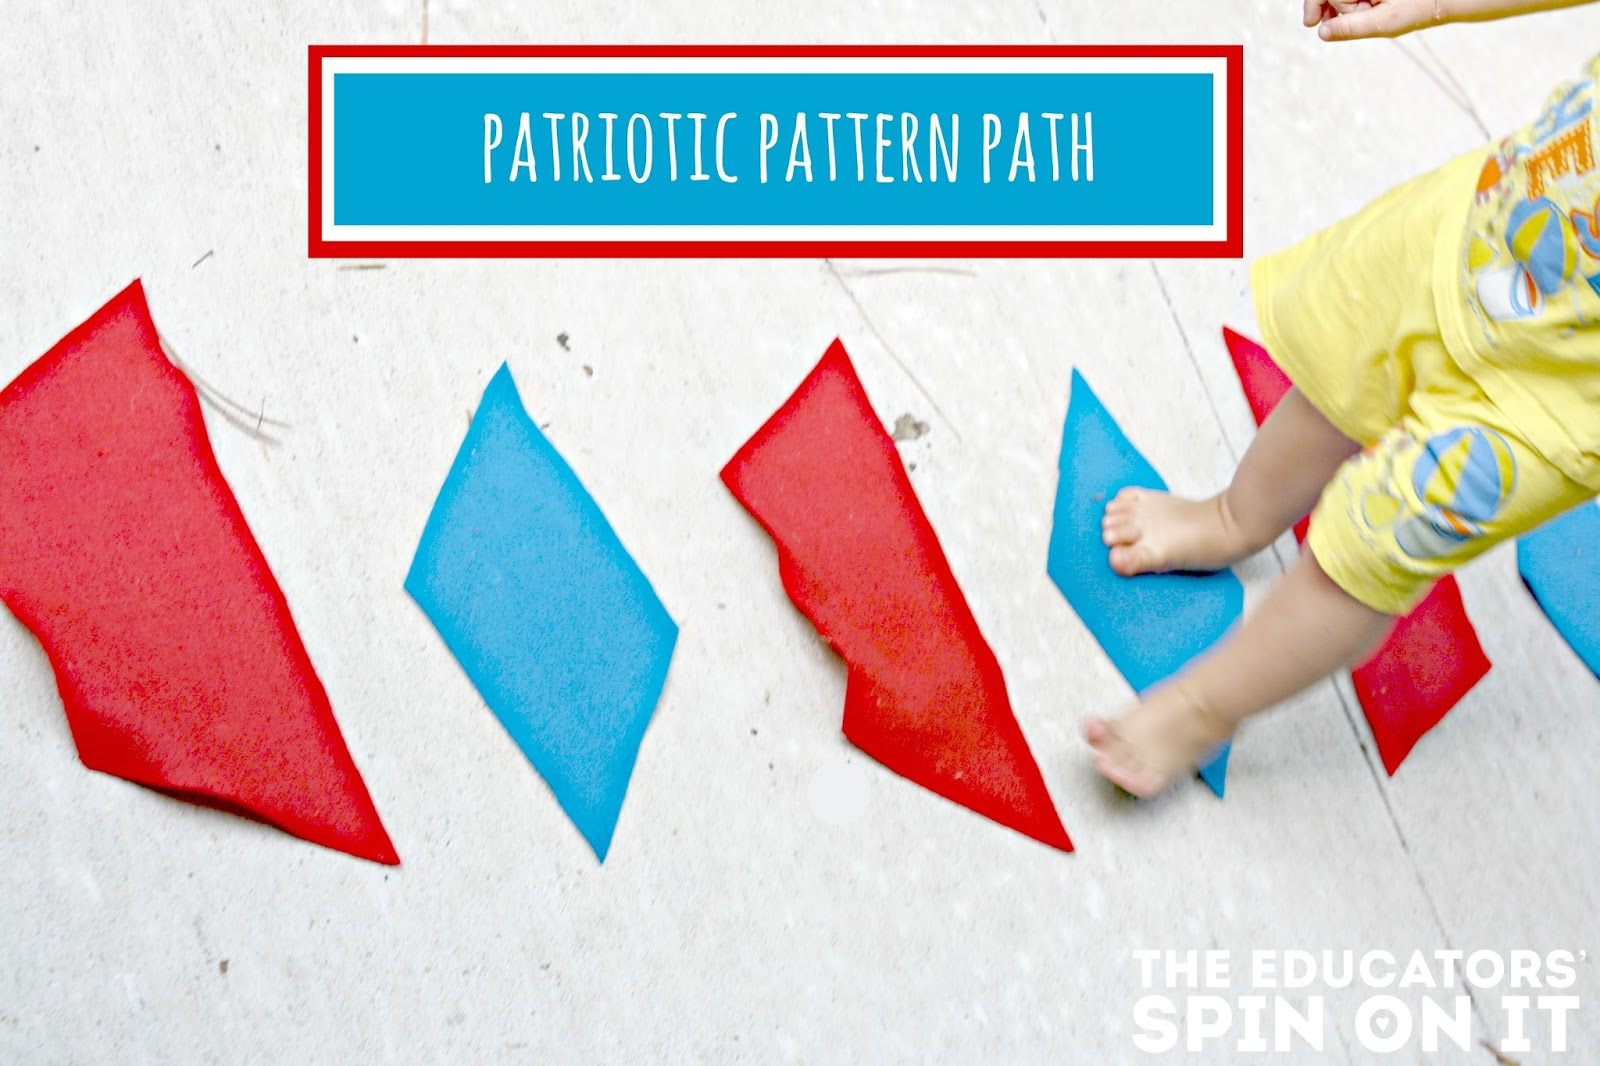 Patterning with Giant Pattern Blocks: Preschool Math and Movement